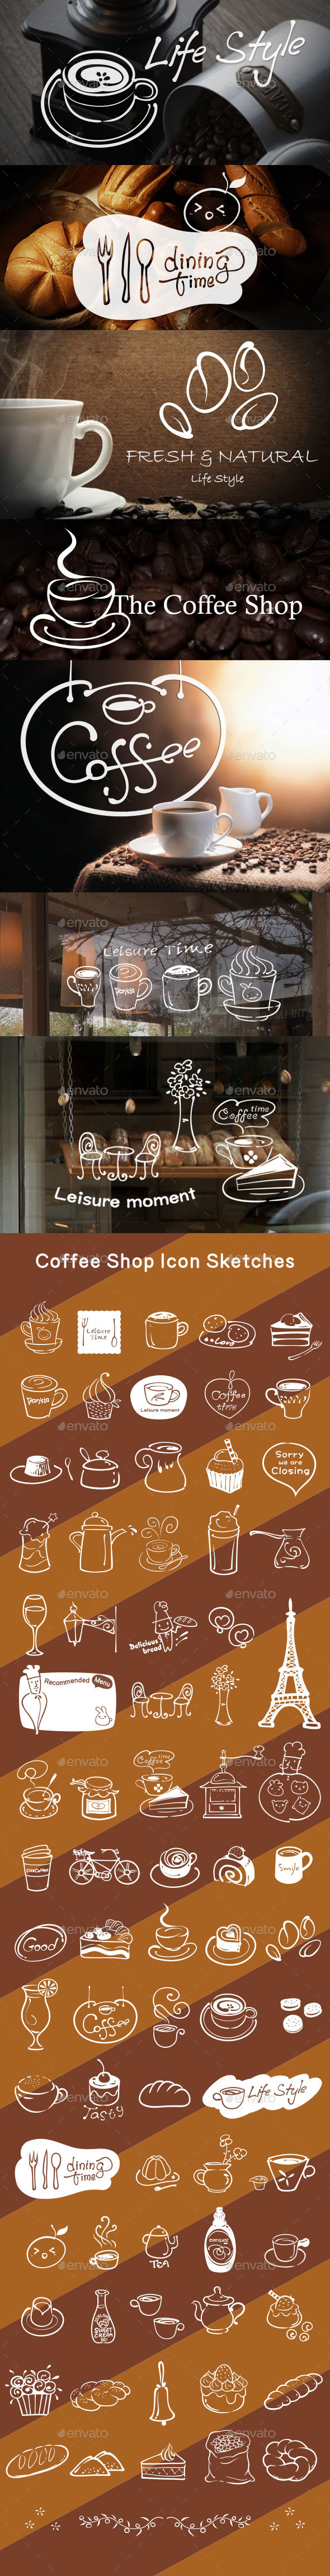 75 Coffee Shop Restaurant Hand Drawn Icon Sketches